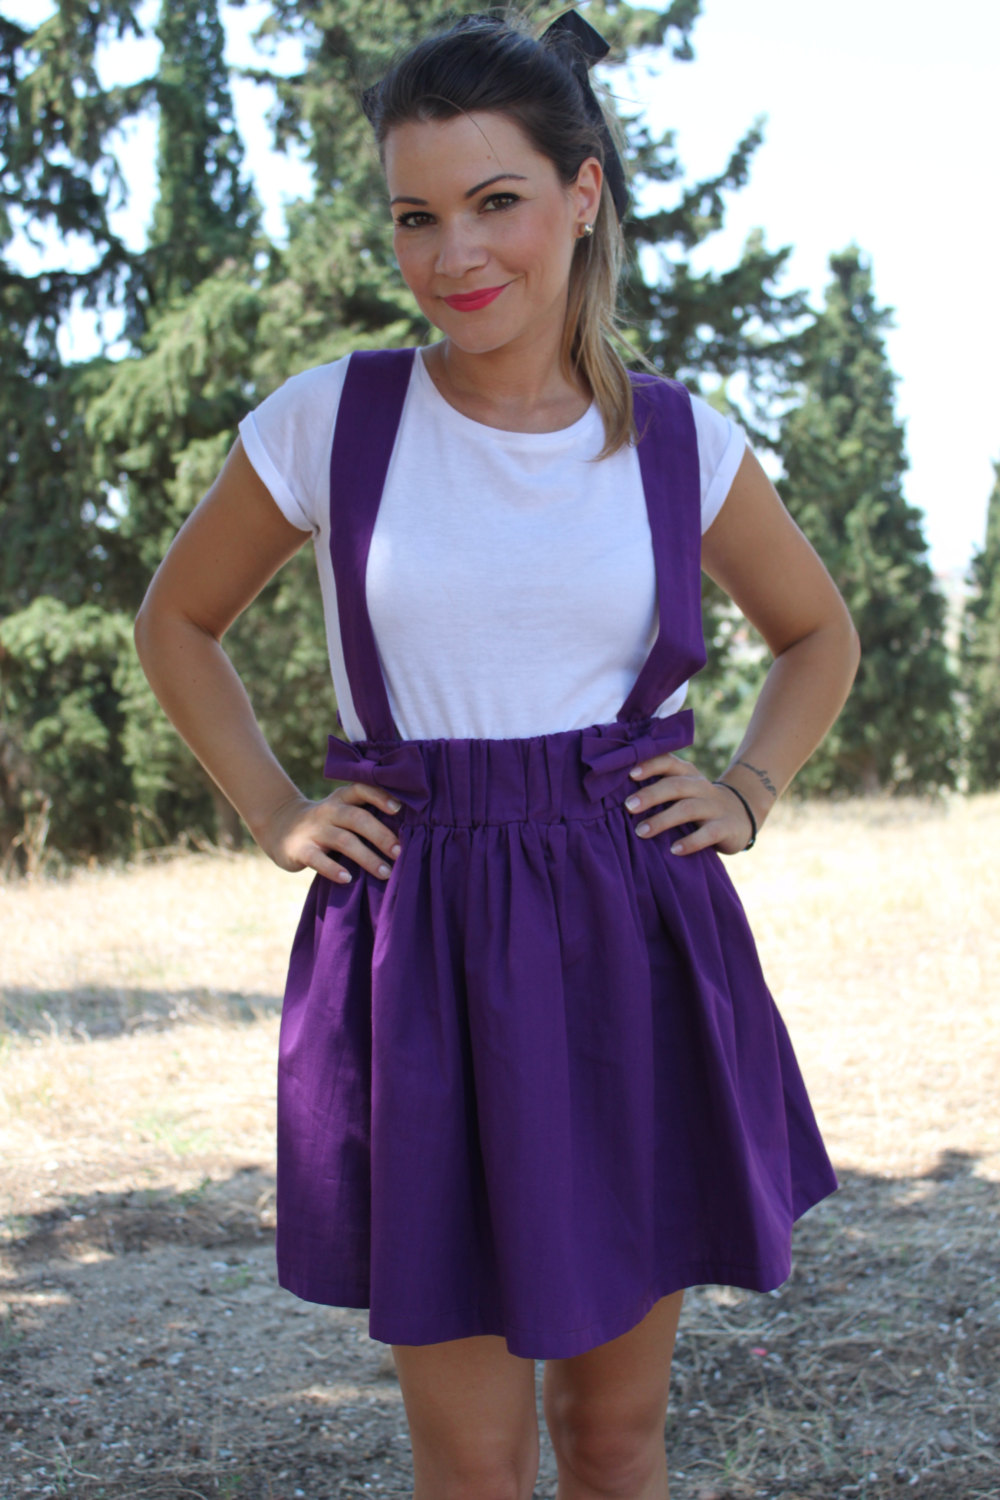 Full Mini Skirt with Suspenders and Bows Purple